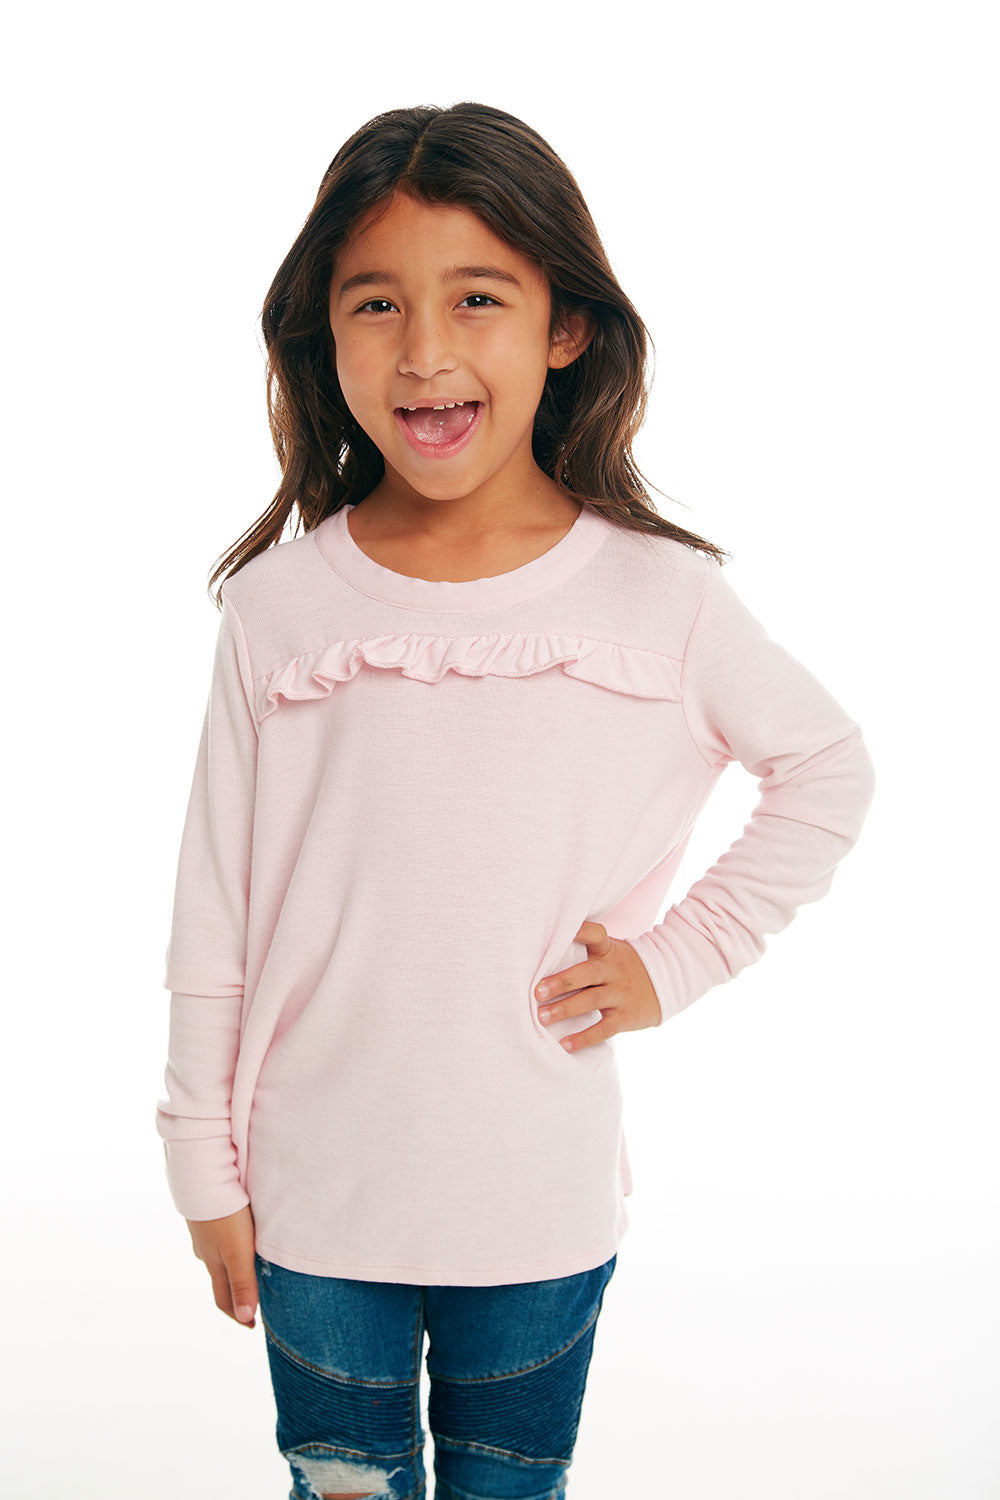 Girls Cozy Knit Long Sleeve Ruffle Yoke Pullover GIRLS chaserbrand4.myshopify.com